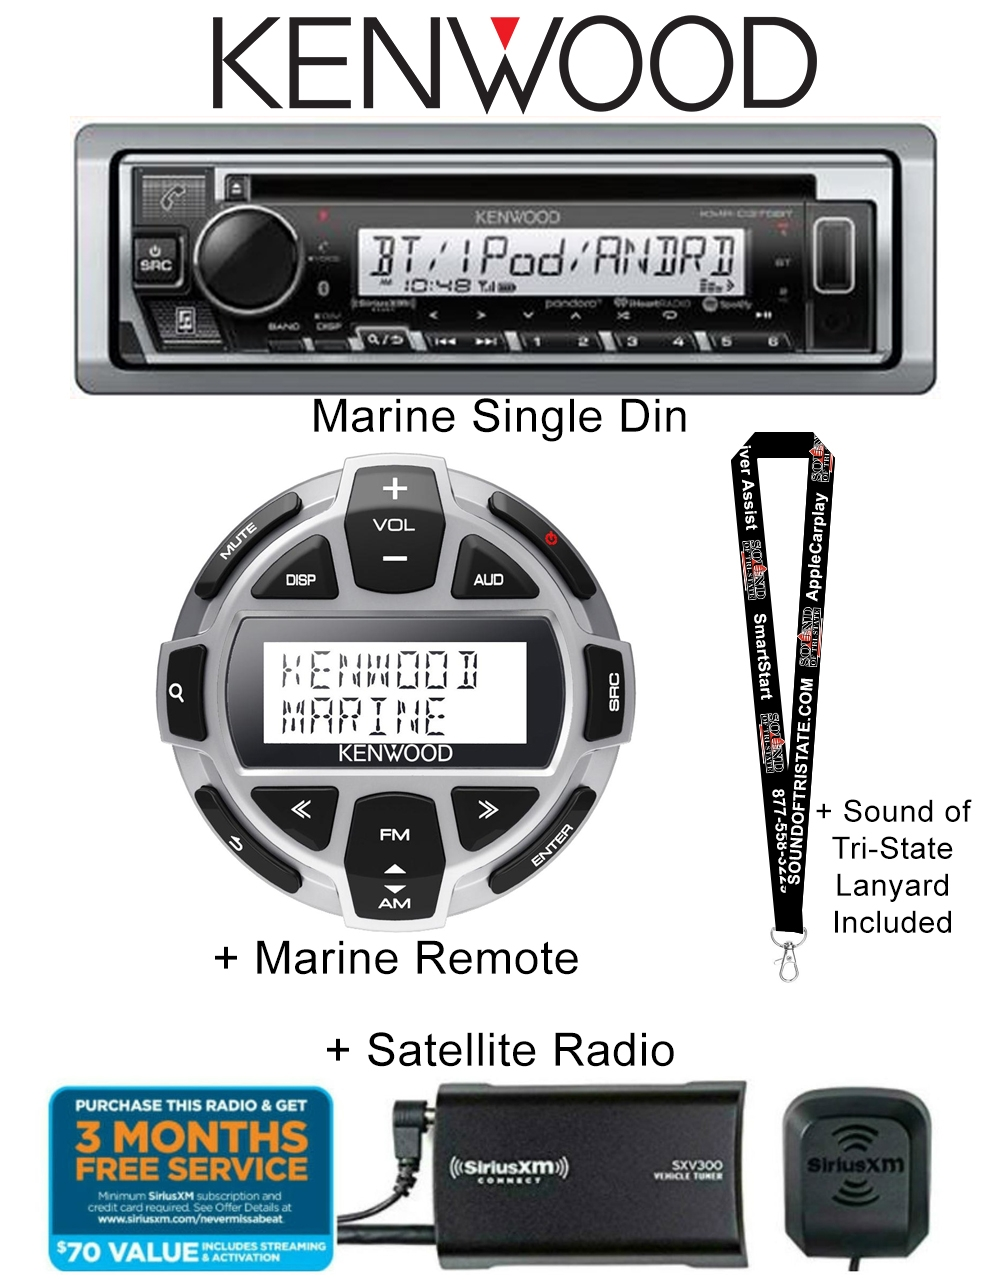 Kenwood Kmr D375bt Marine Cd Receiver With Bluetooth And Usb Input Jl Audio Amp Wiring Kit Marinerated Kca Rc55mr Wired Remote Control Siriusxm Satellite Radio Tuner Antenna A Sound